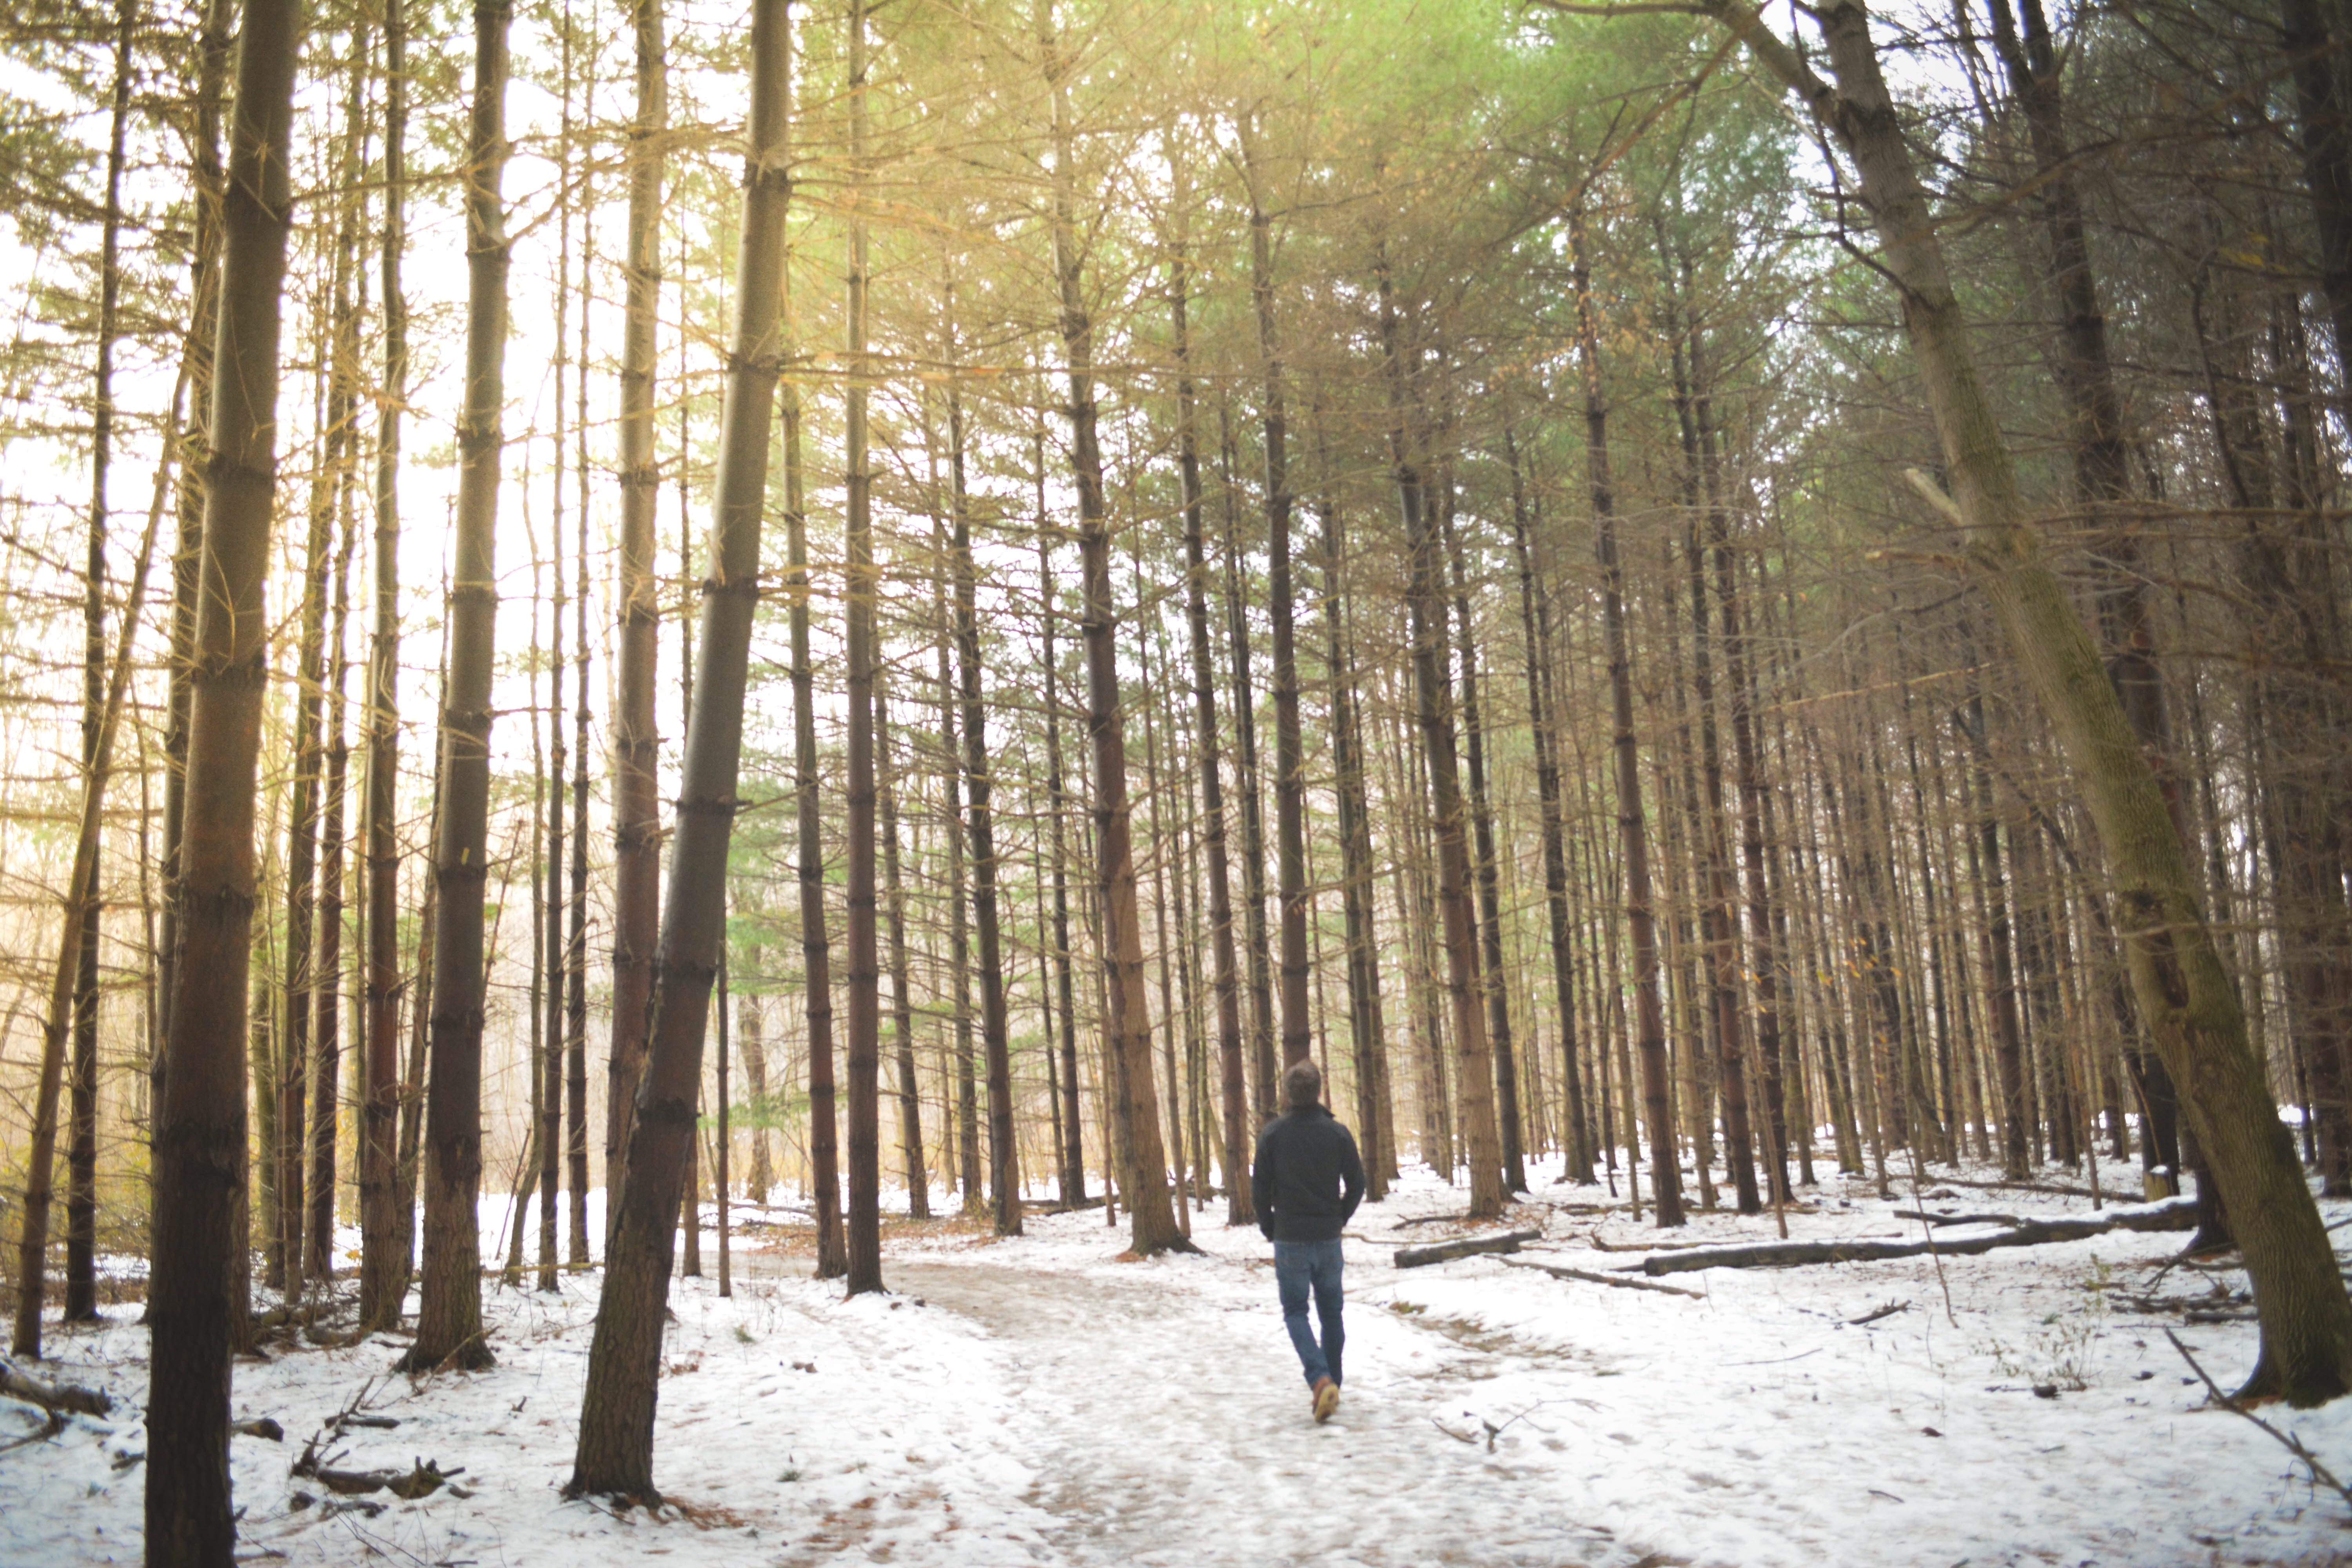 A lone man walking on a snowy path in a forest